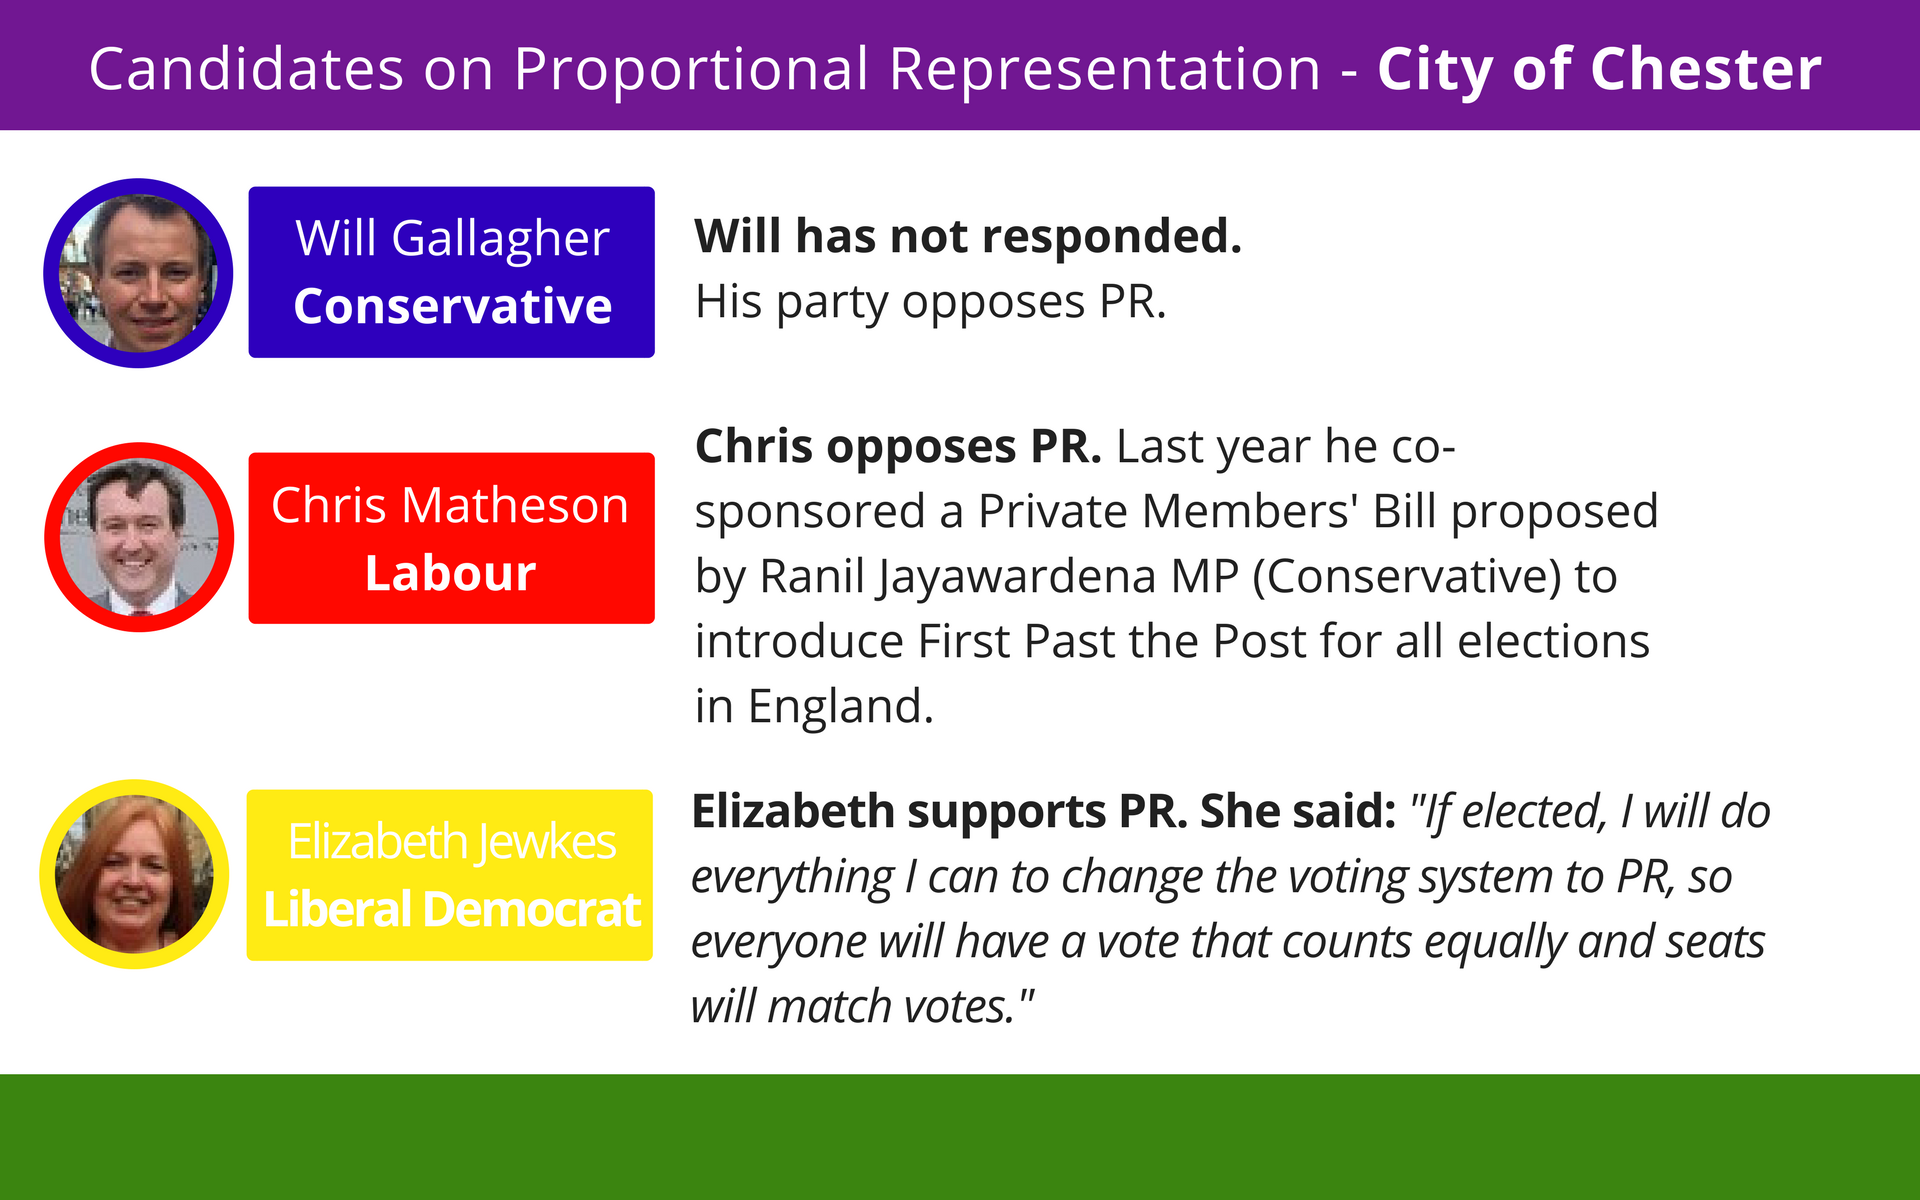 Although the City of Chester is extremely marginal, for First Past the Post it's a safe seat. The Labour incumbent sponsored legislation to extend the use of FPTP to all English elections last year.